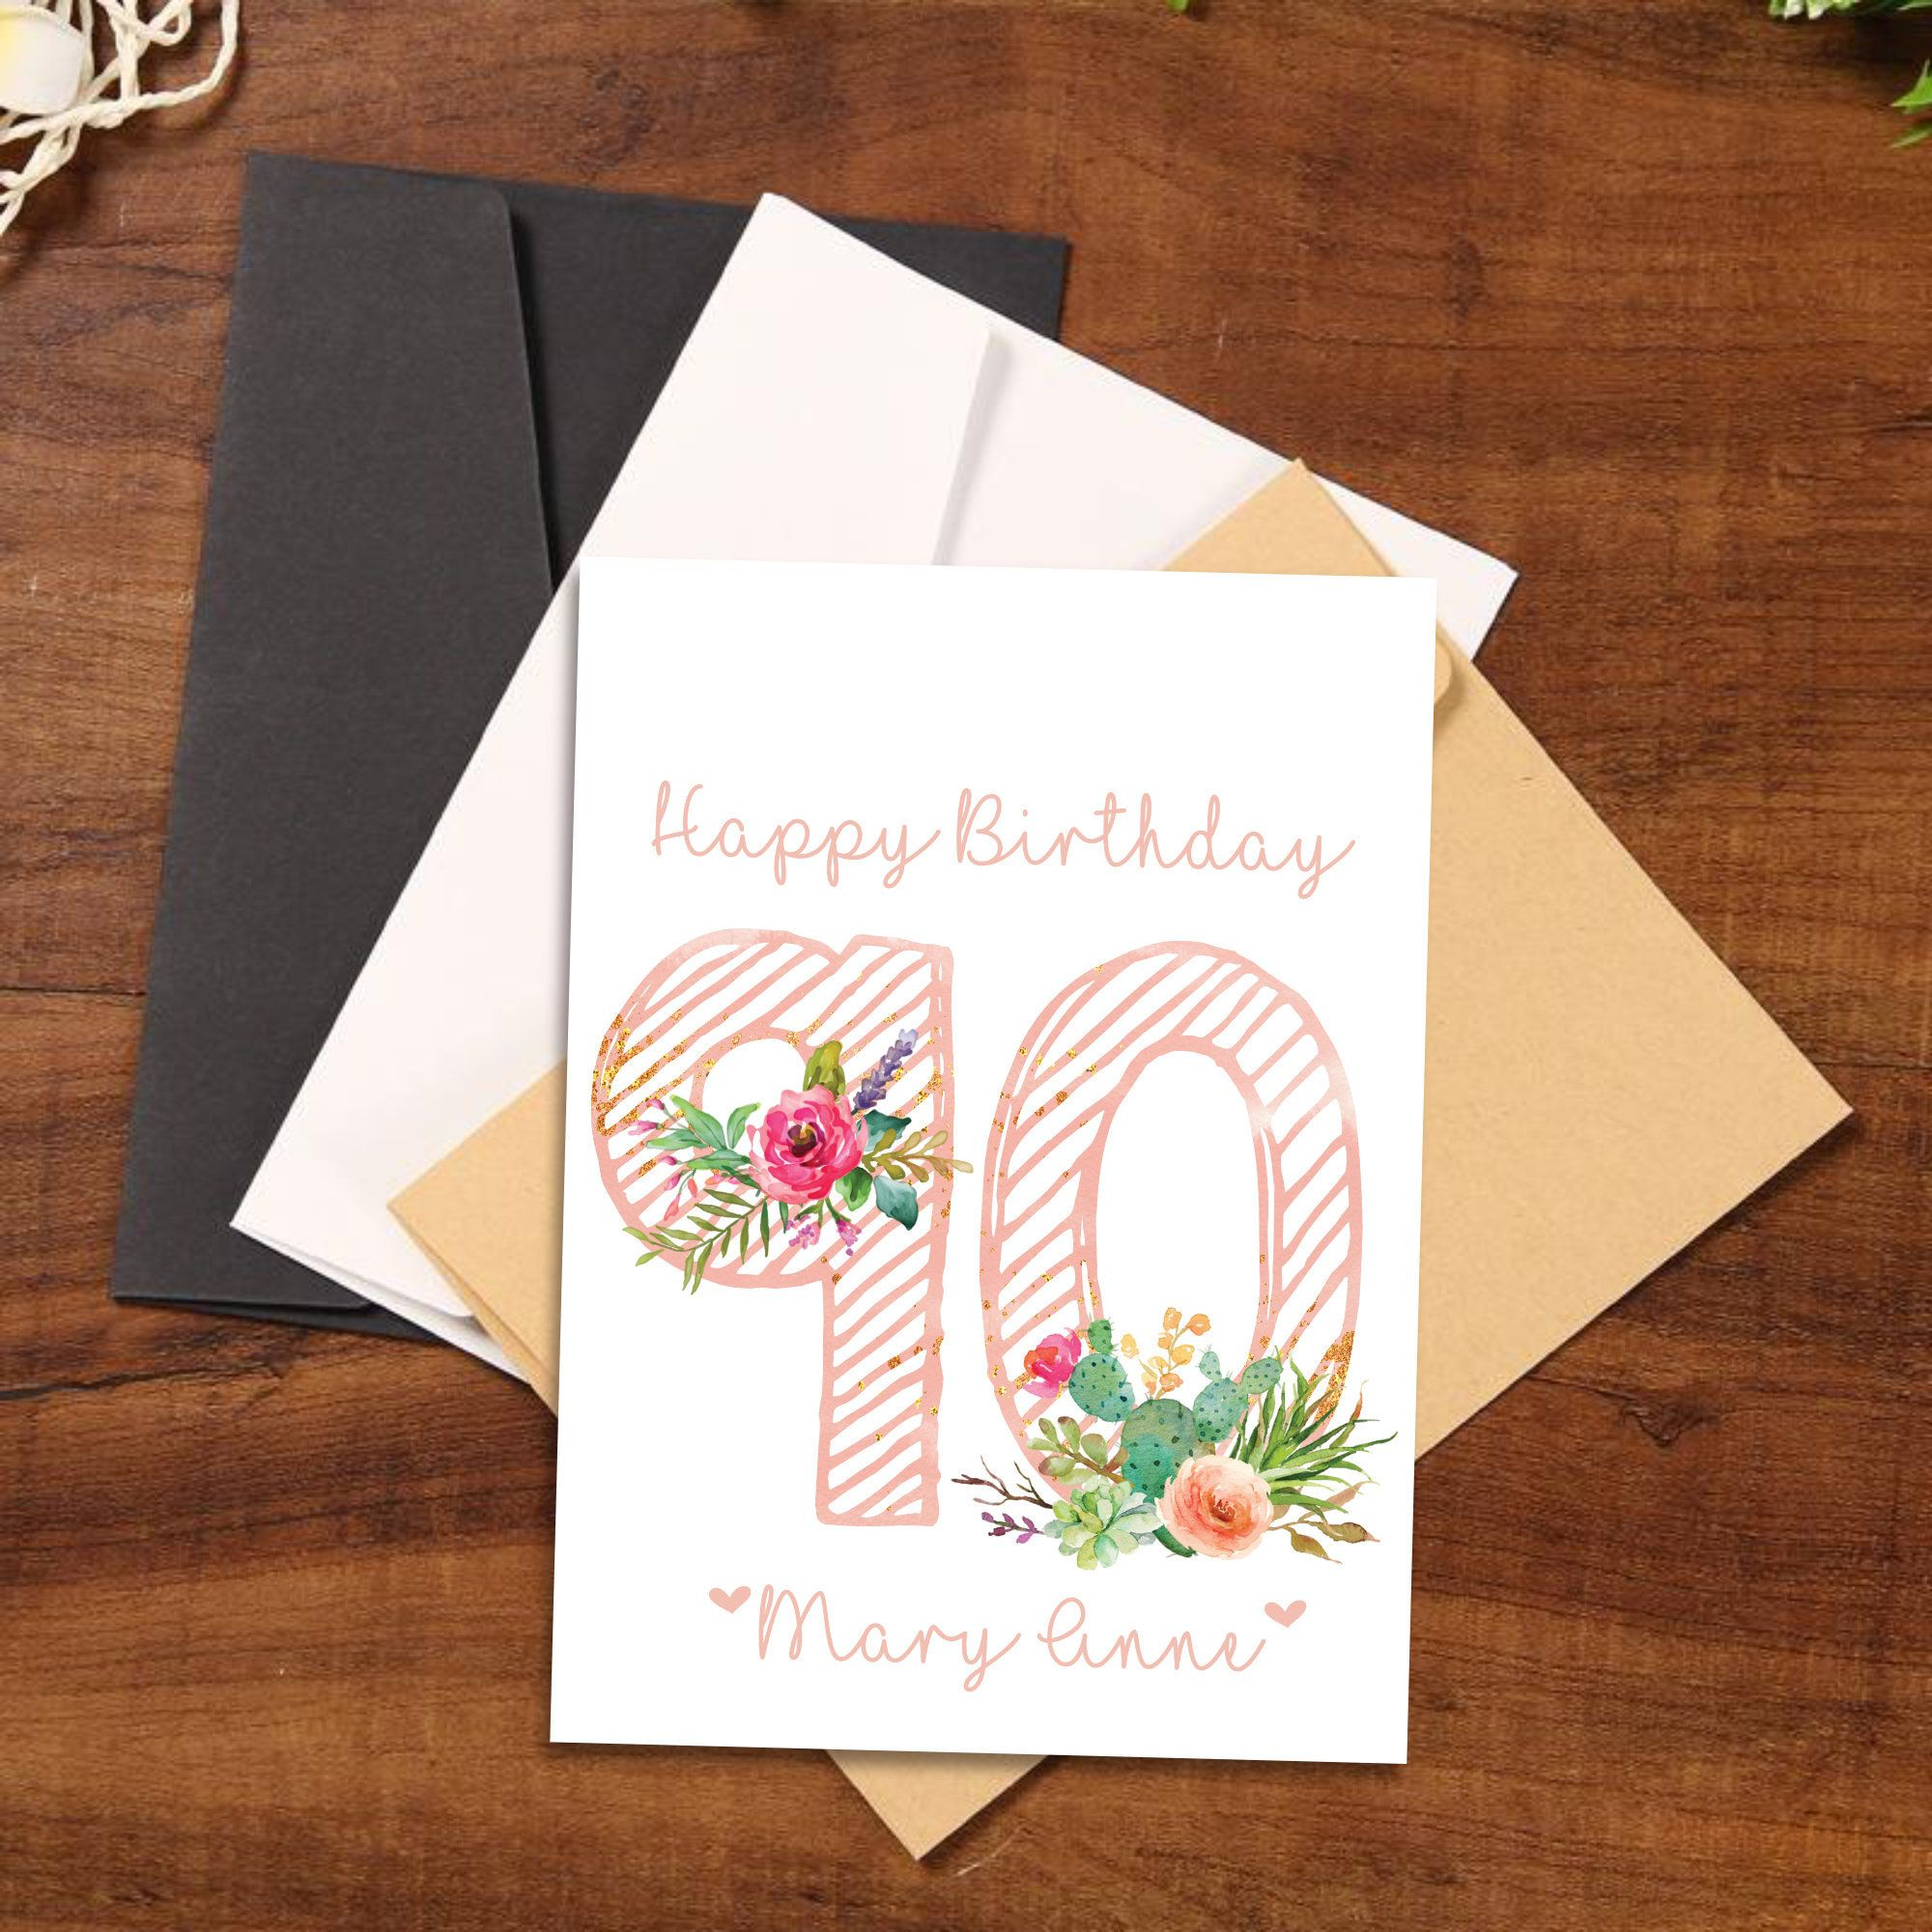 90th Birthday Card Personalized Age 90 Birthday Card Etsy In 2021 30th Birthday Cards 90th Birthday Cards Birthday Card For Aunt